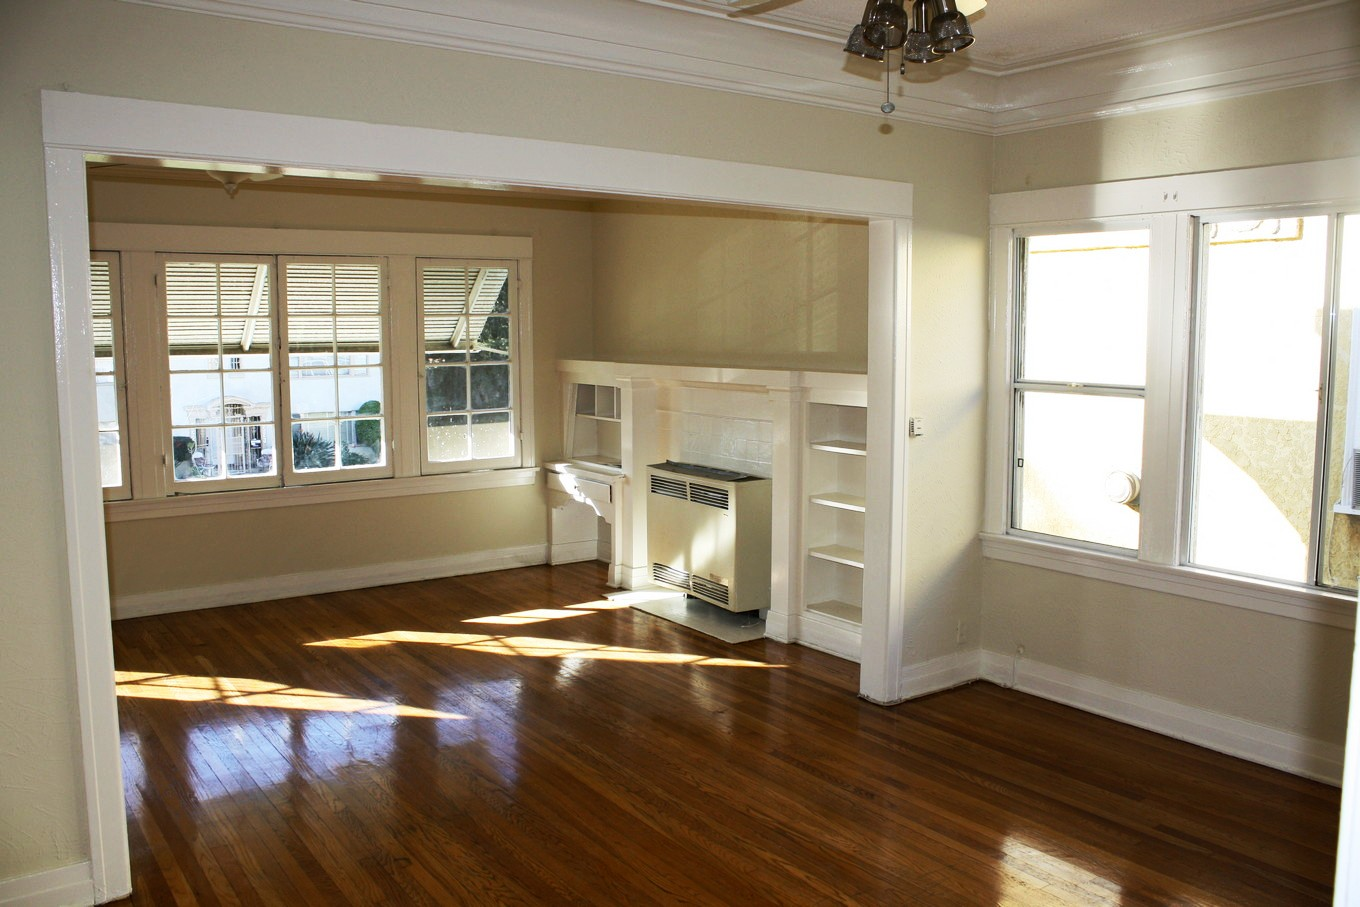 Property management company in los angeles new listing - 1 bedroom apartments los angeles ...